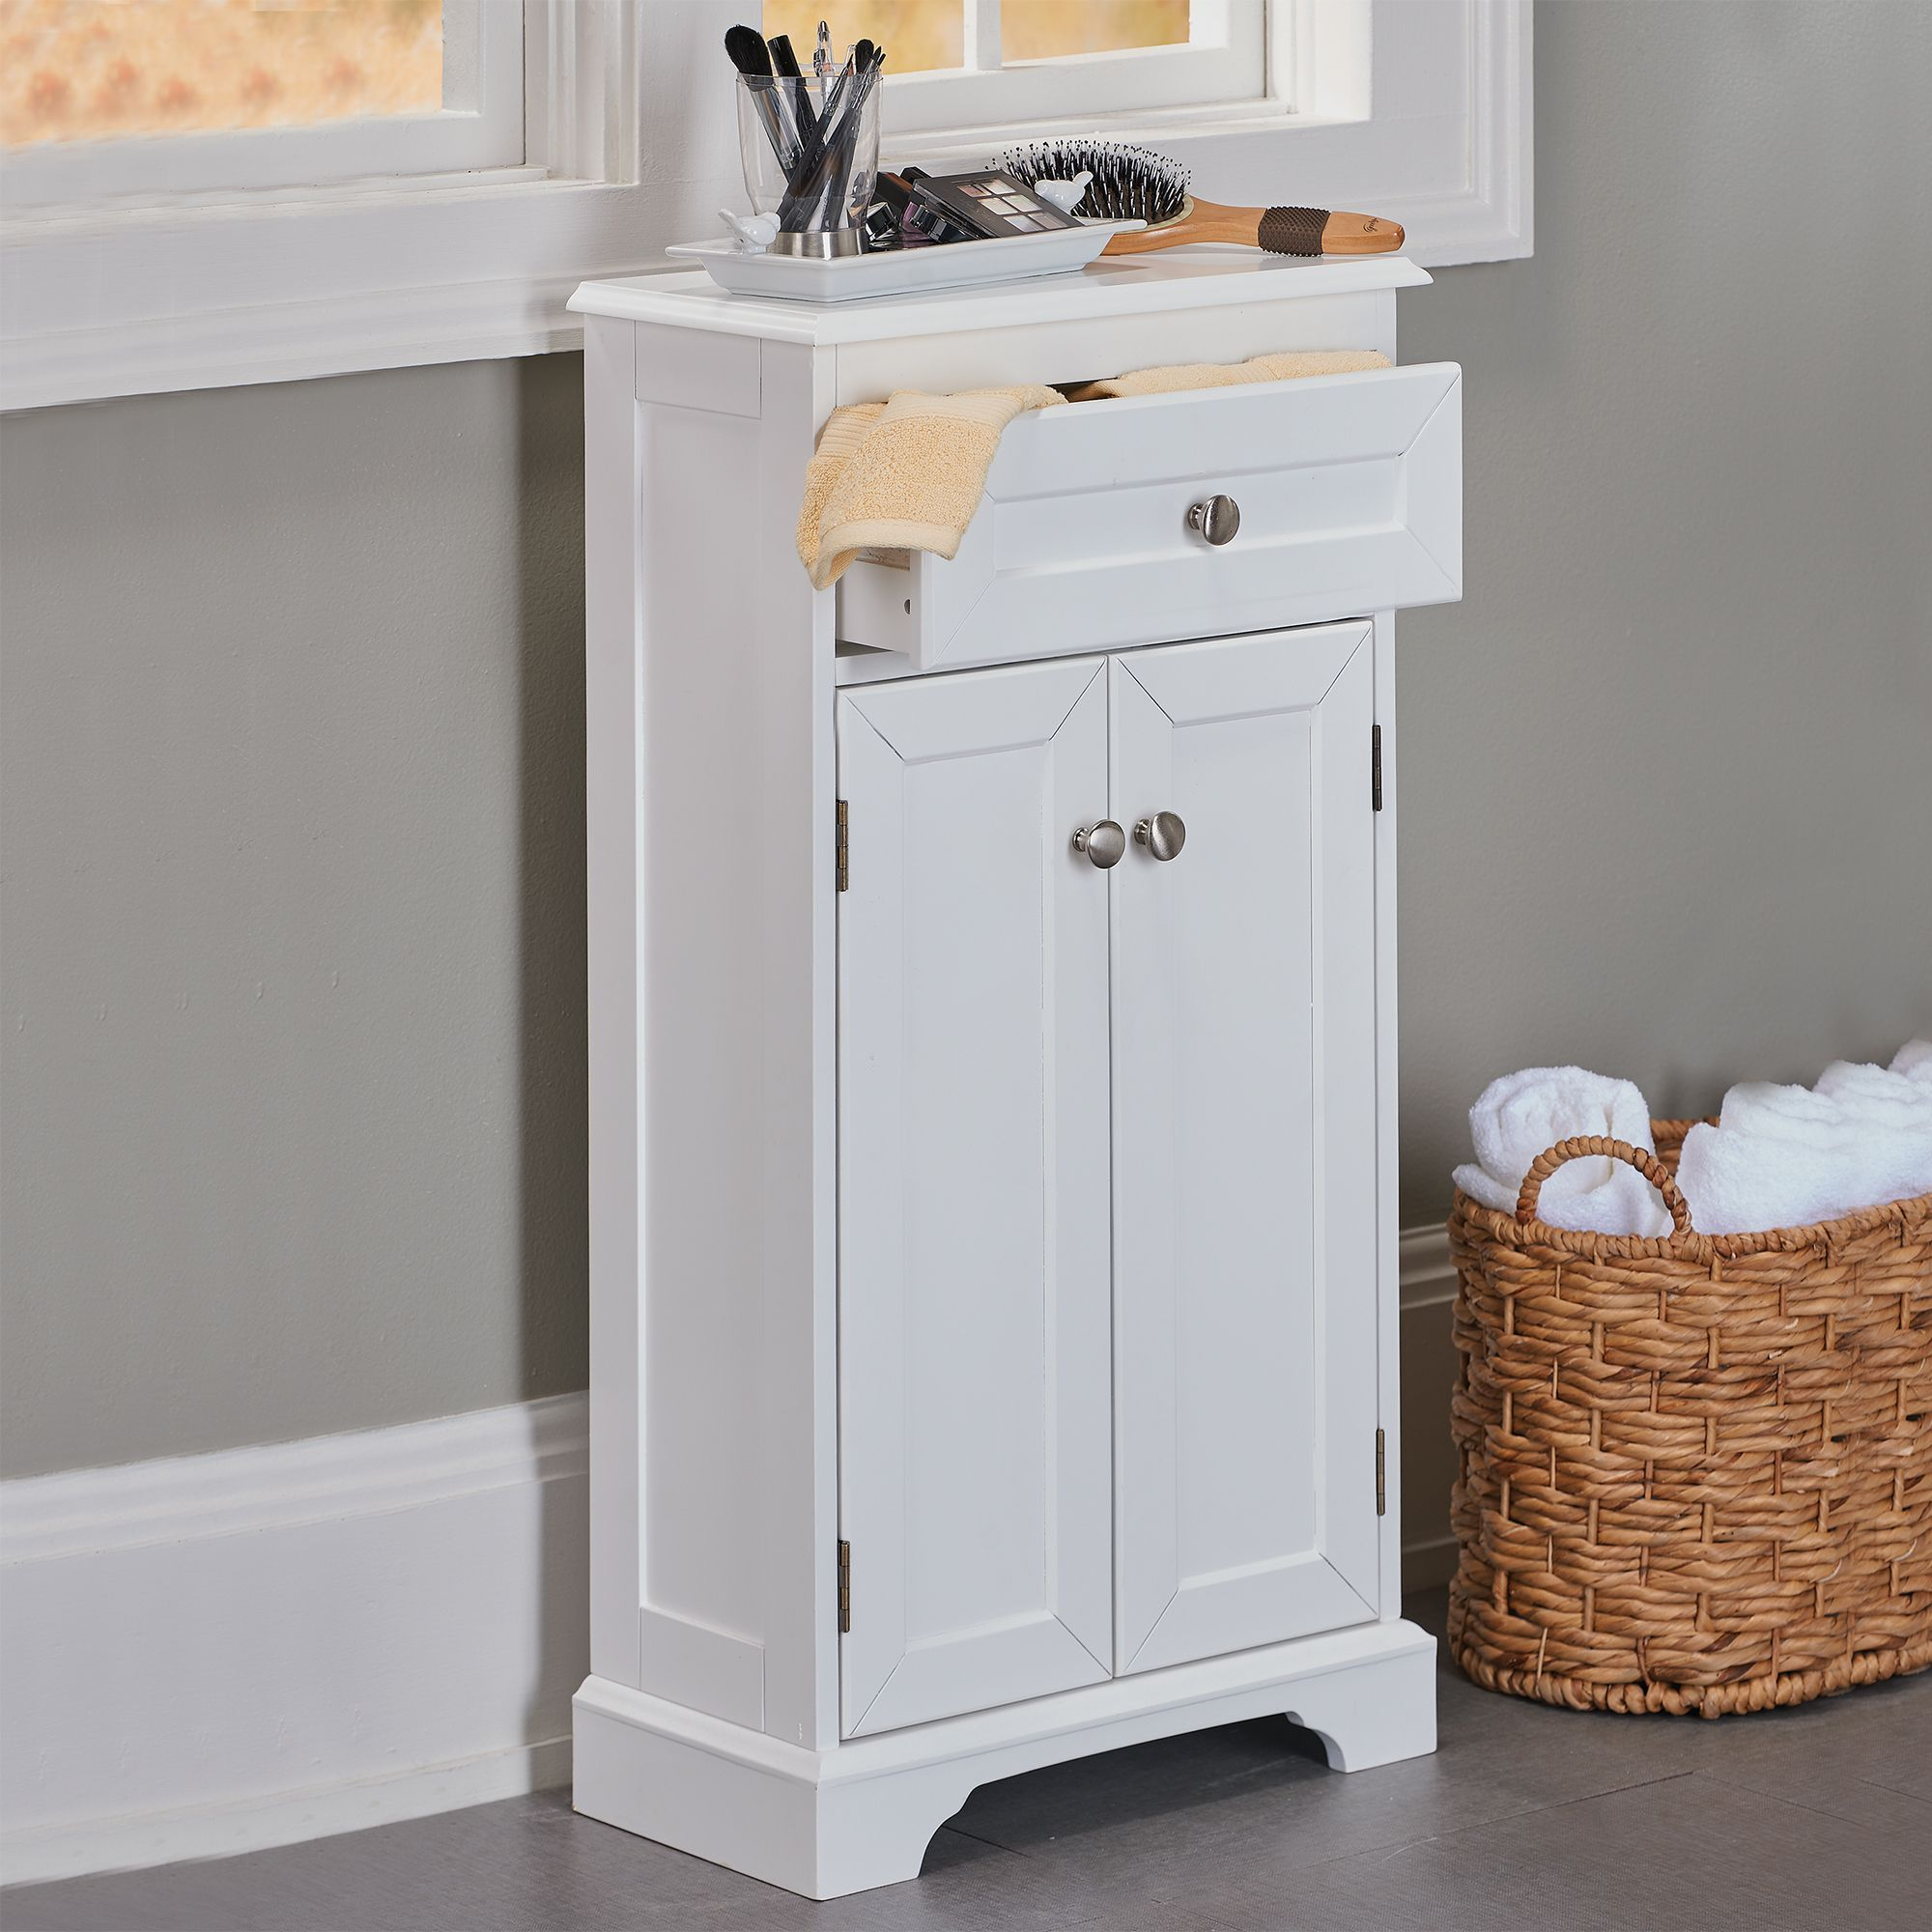 Ahorra Muebles Weatherby White Bathroom Cabinet Its Slim Design And